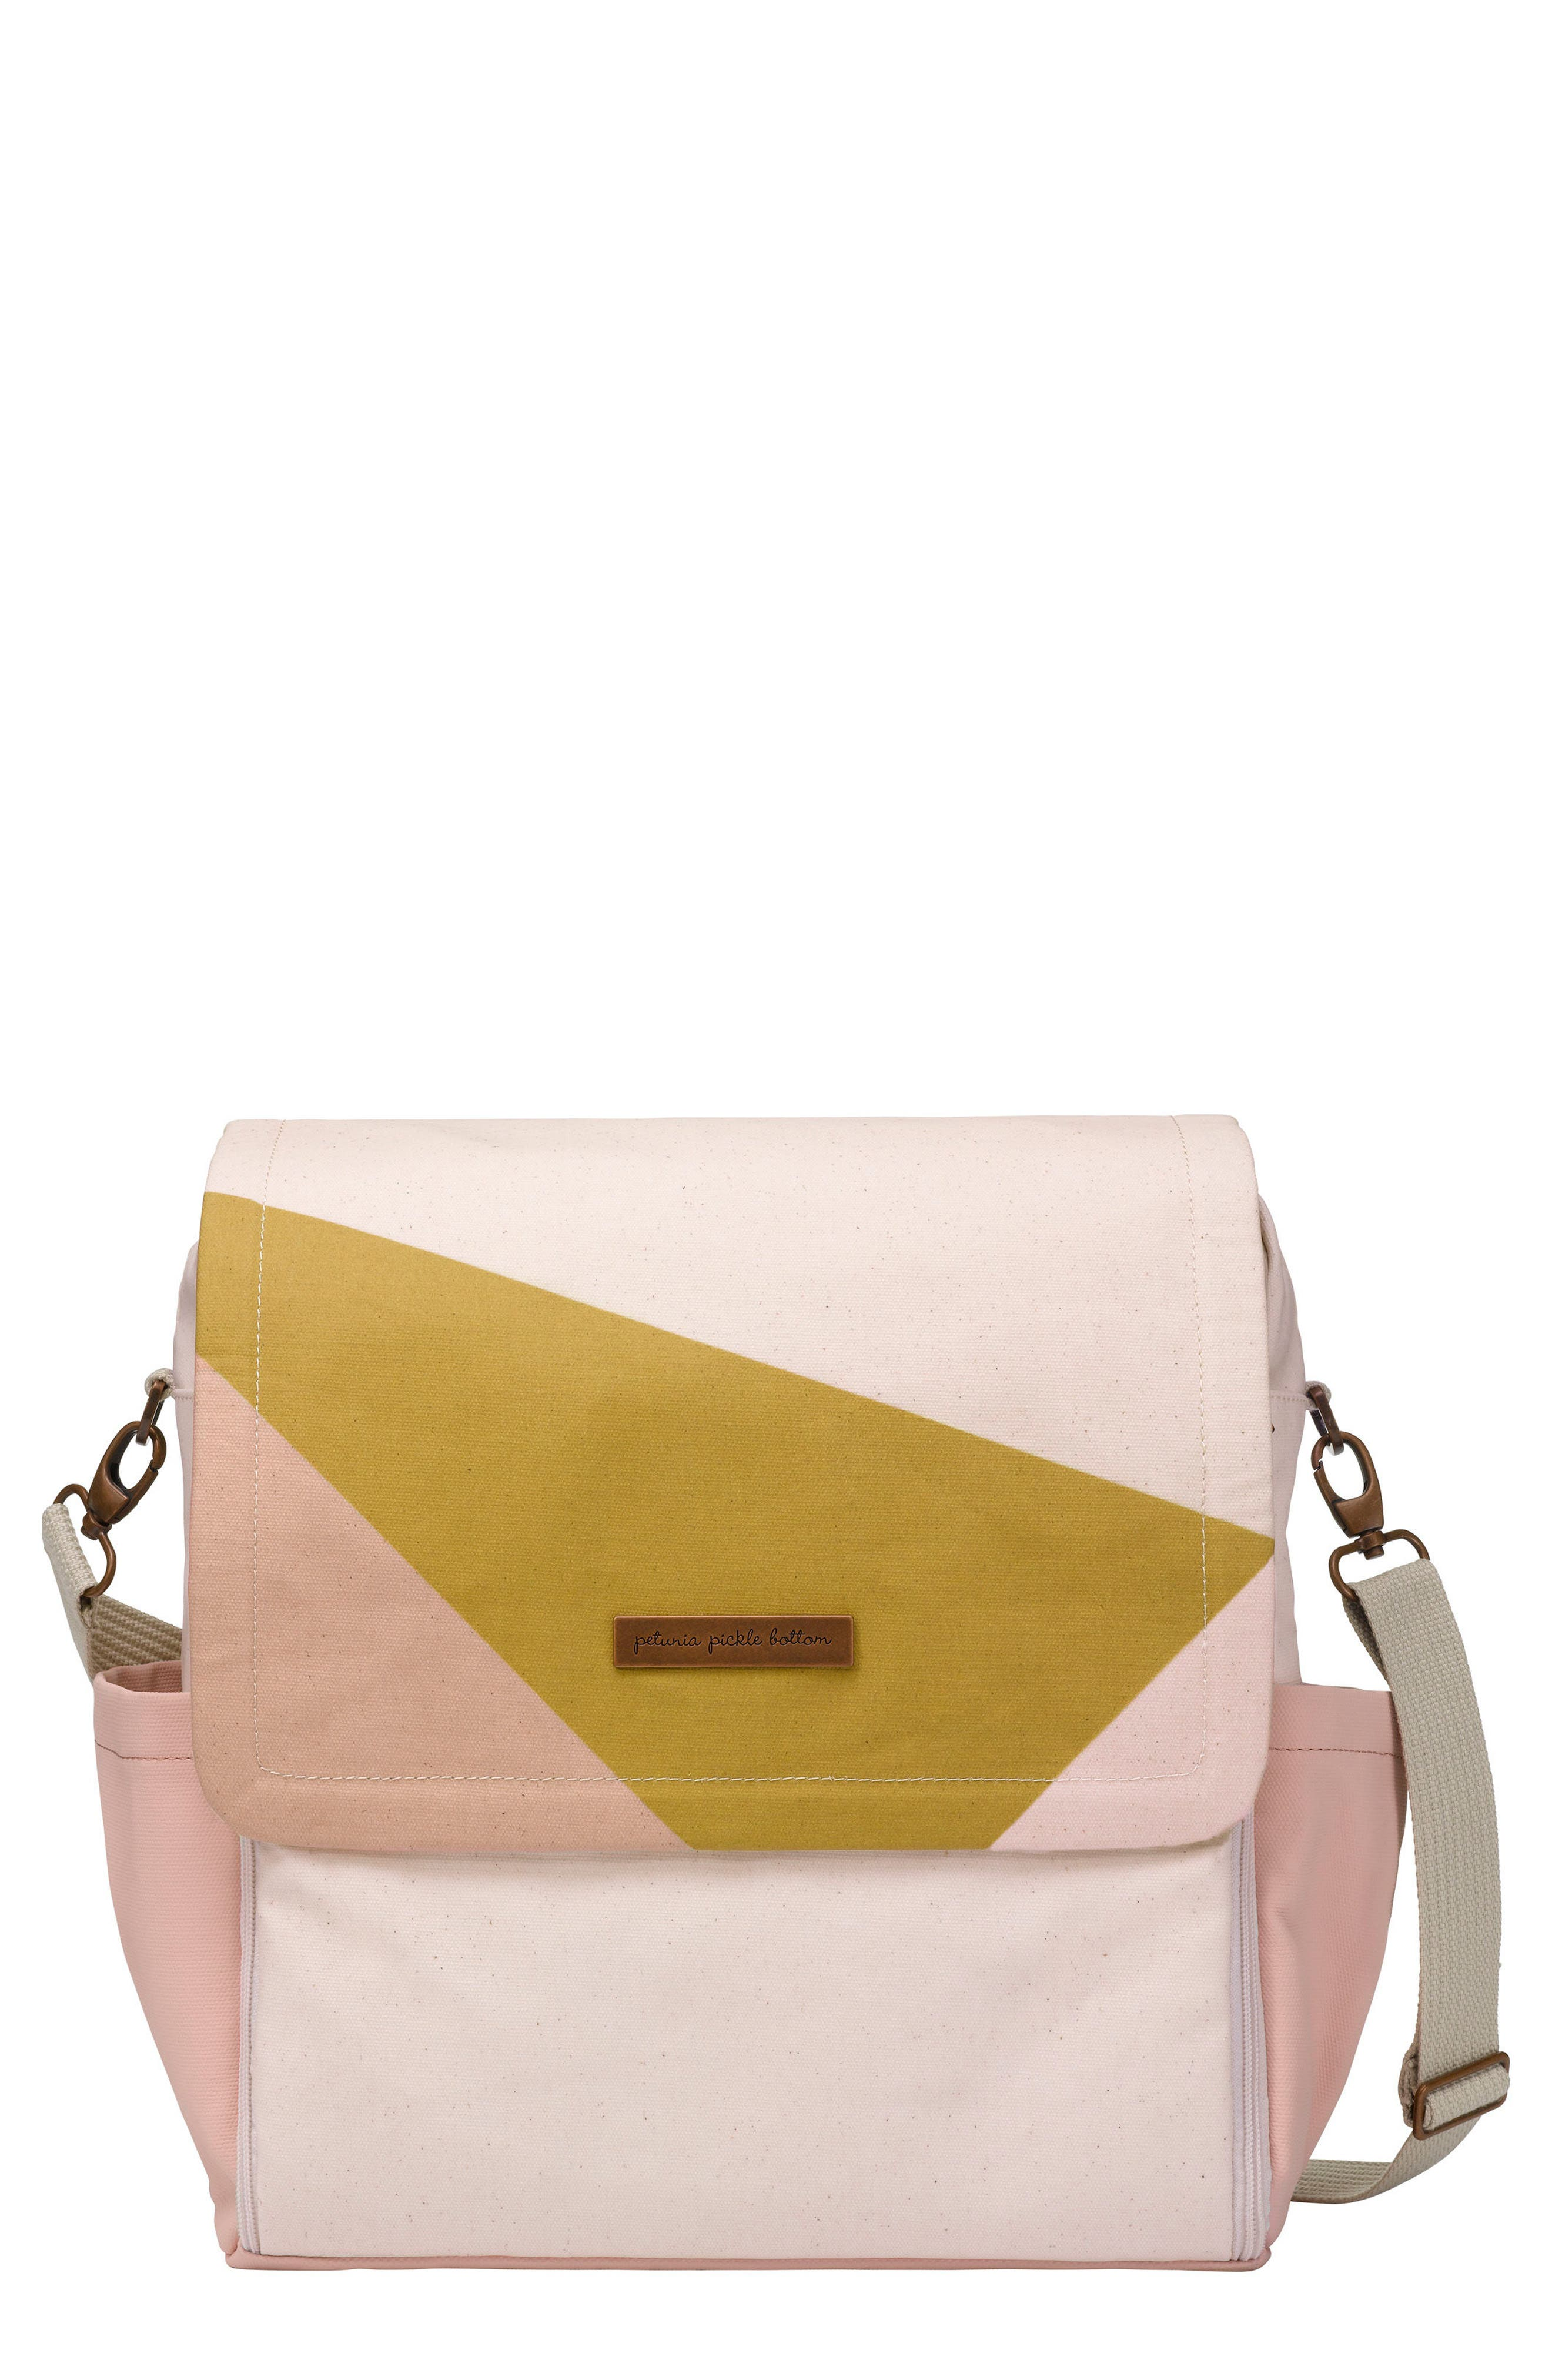 Boxy Backpack Diaper Bag,                         Main,                         color, Birch/ Macaron